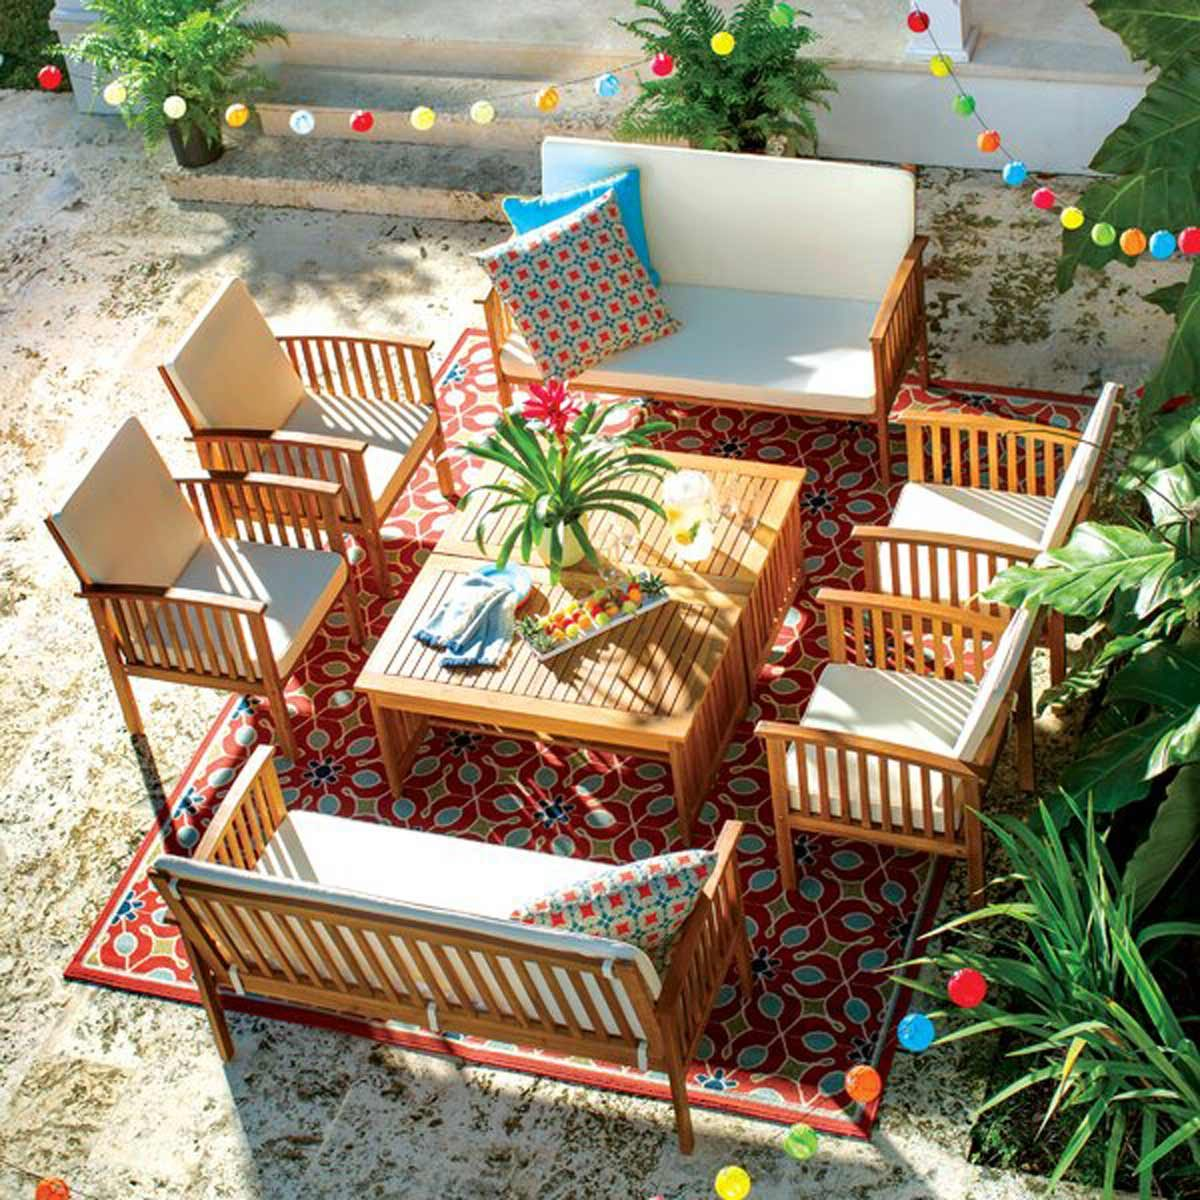 outdoor furniture patio set from wayfair.com